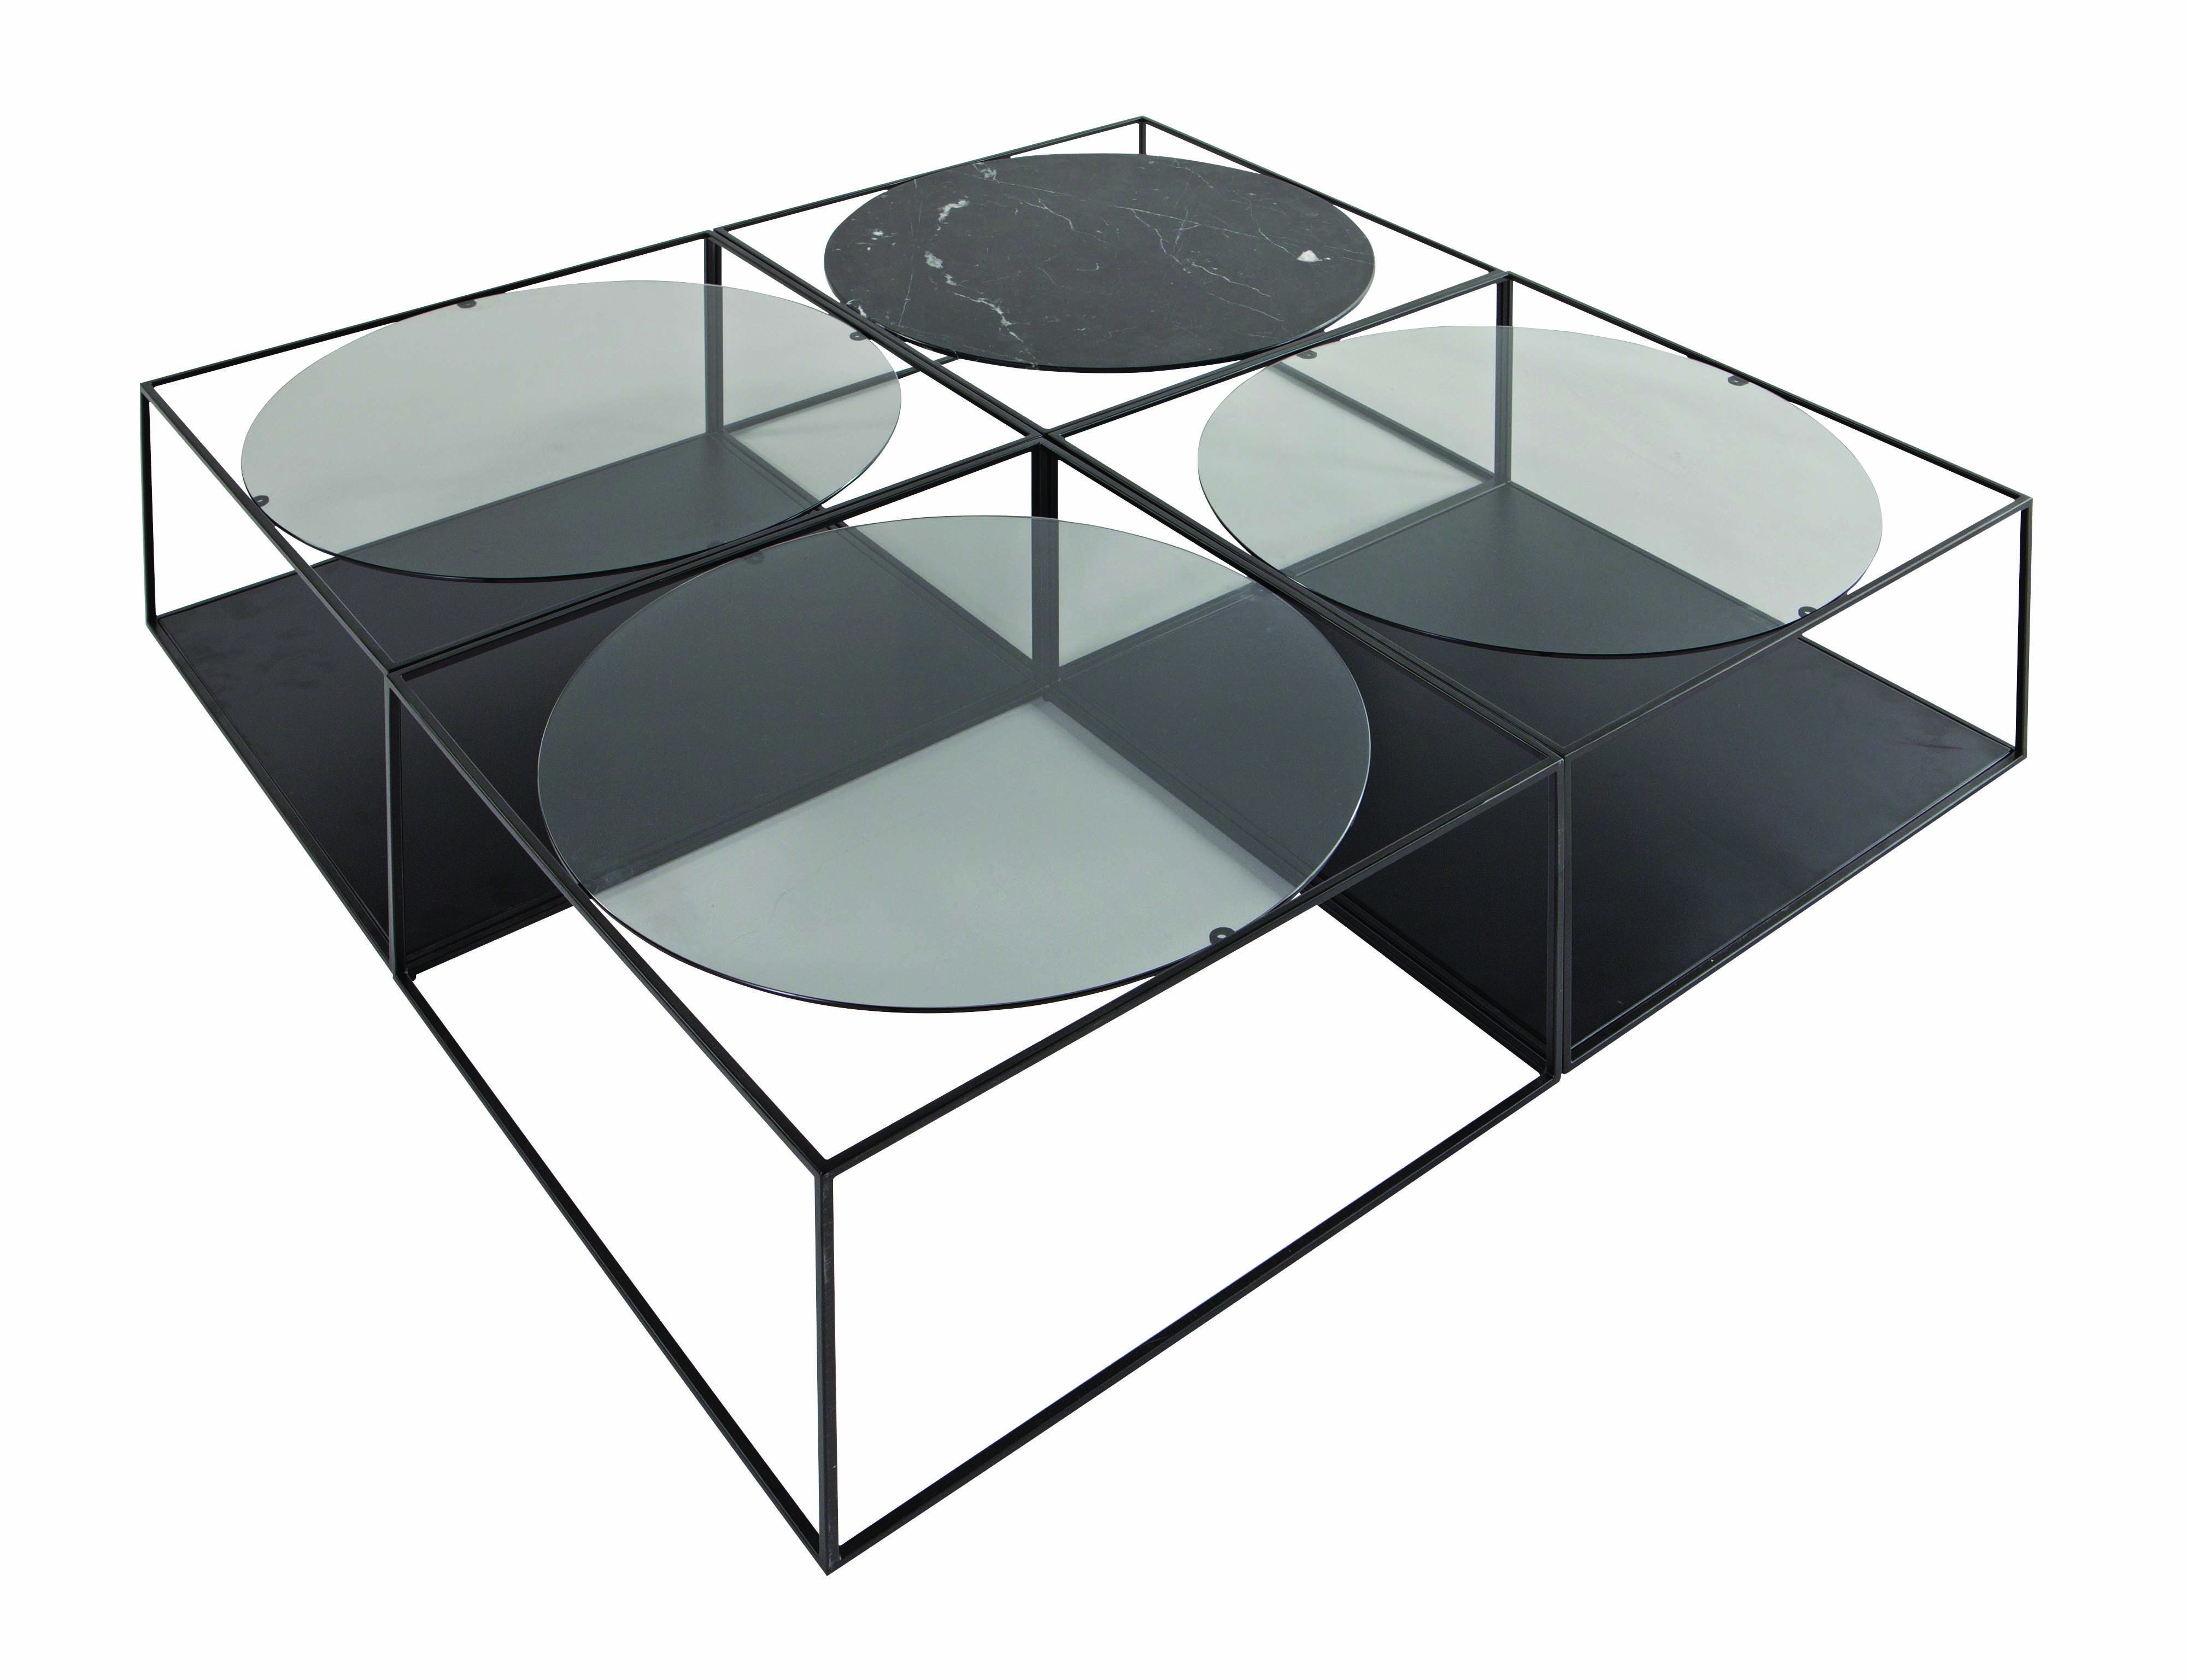 Roche Bobois G3 coffee table Mobilier Design furniture